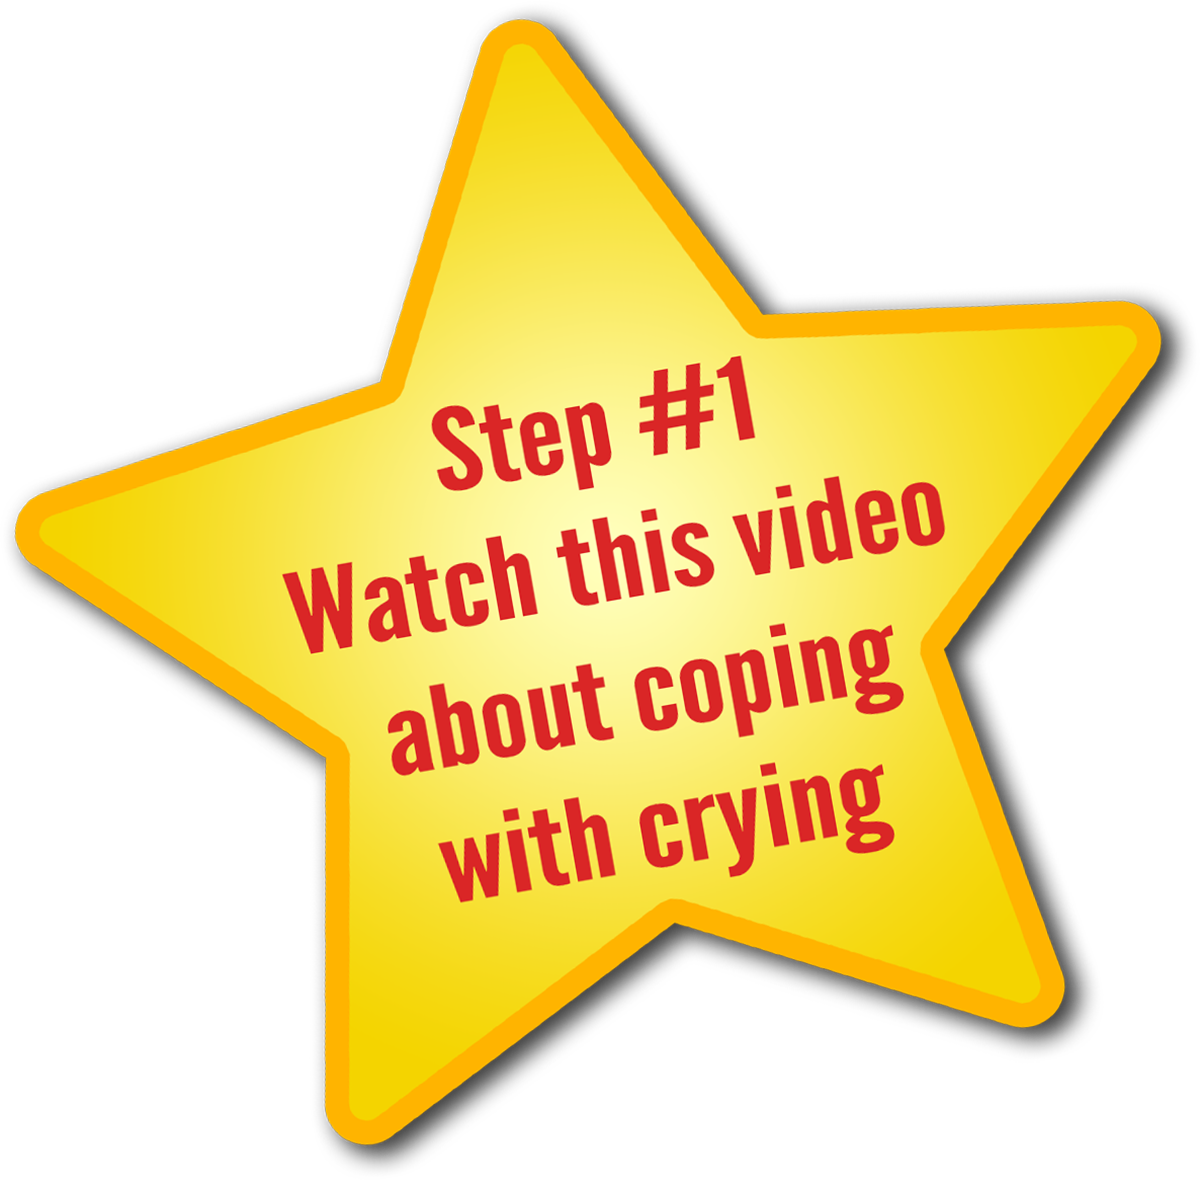 Step 1 - Watch this video about coping with crying